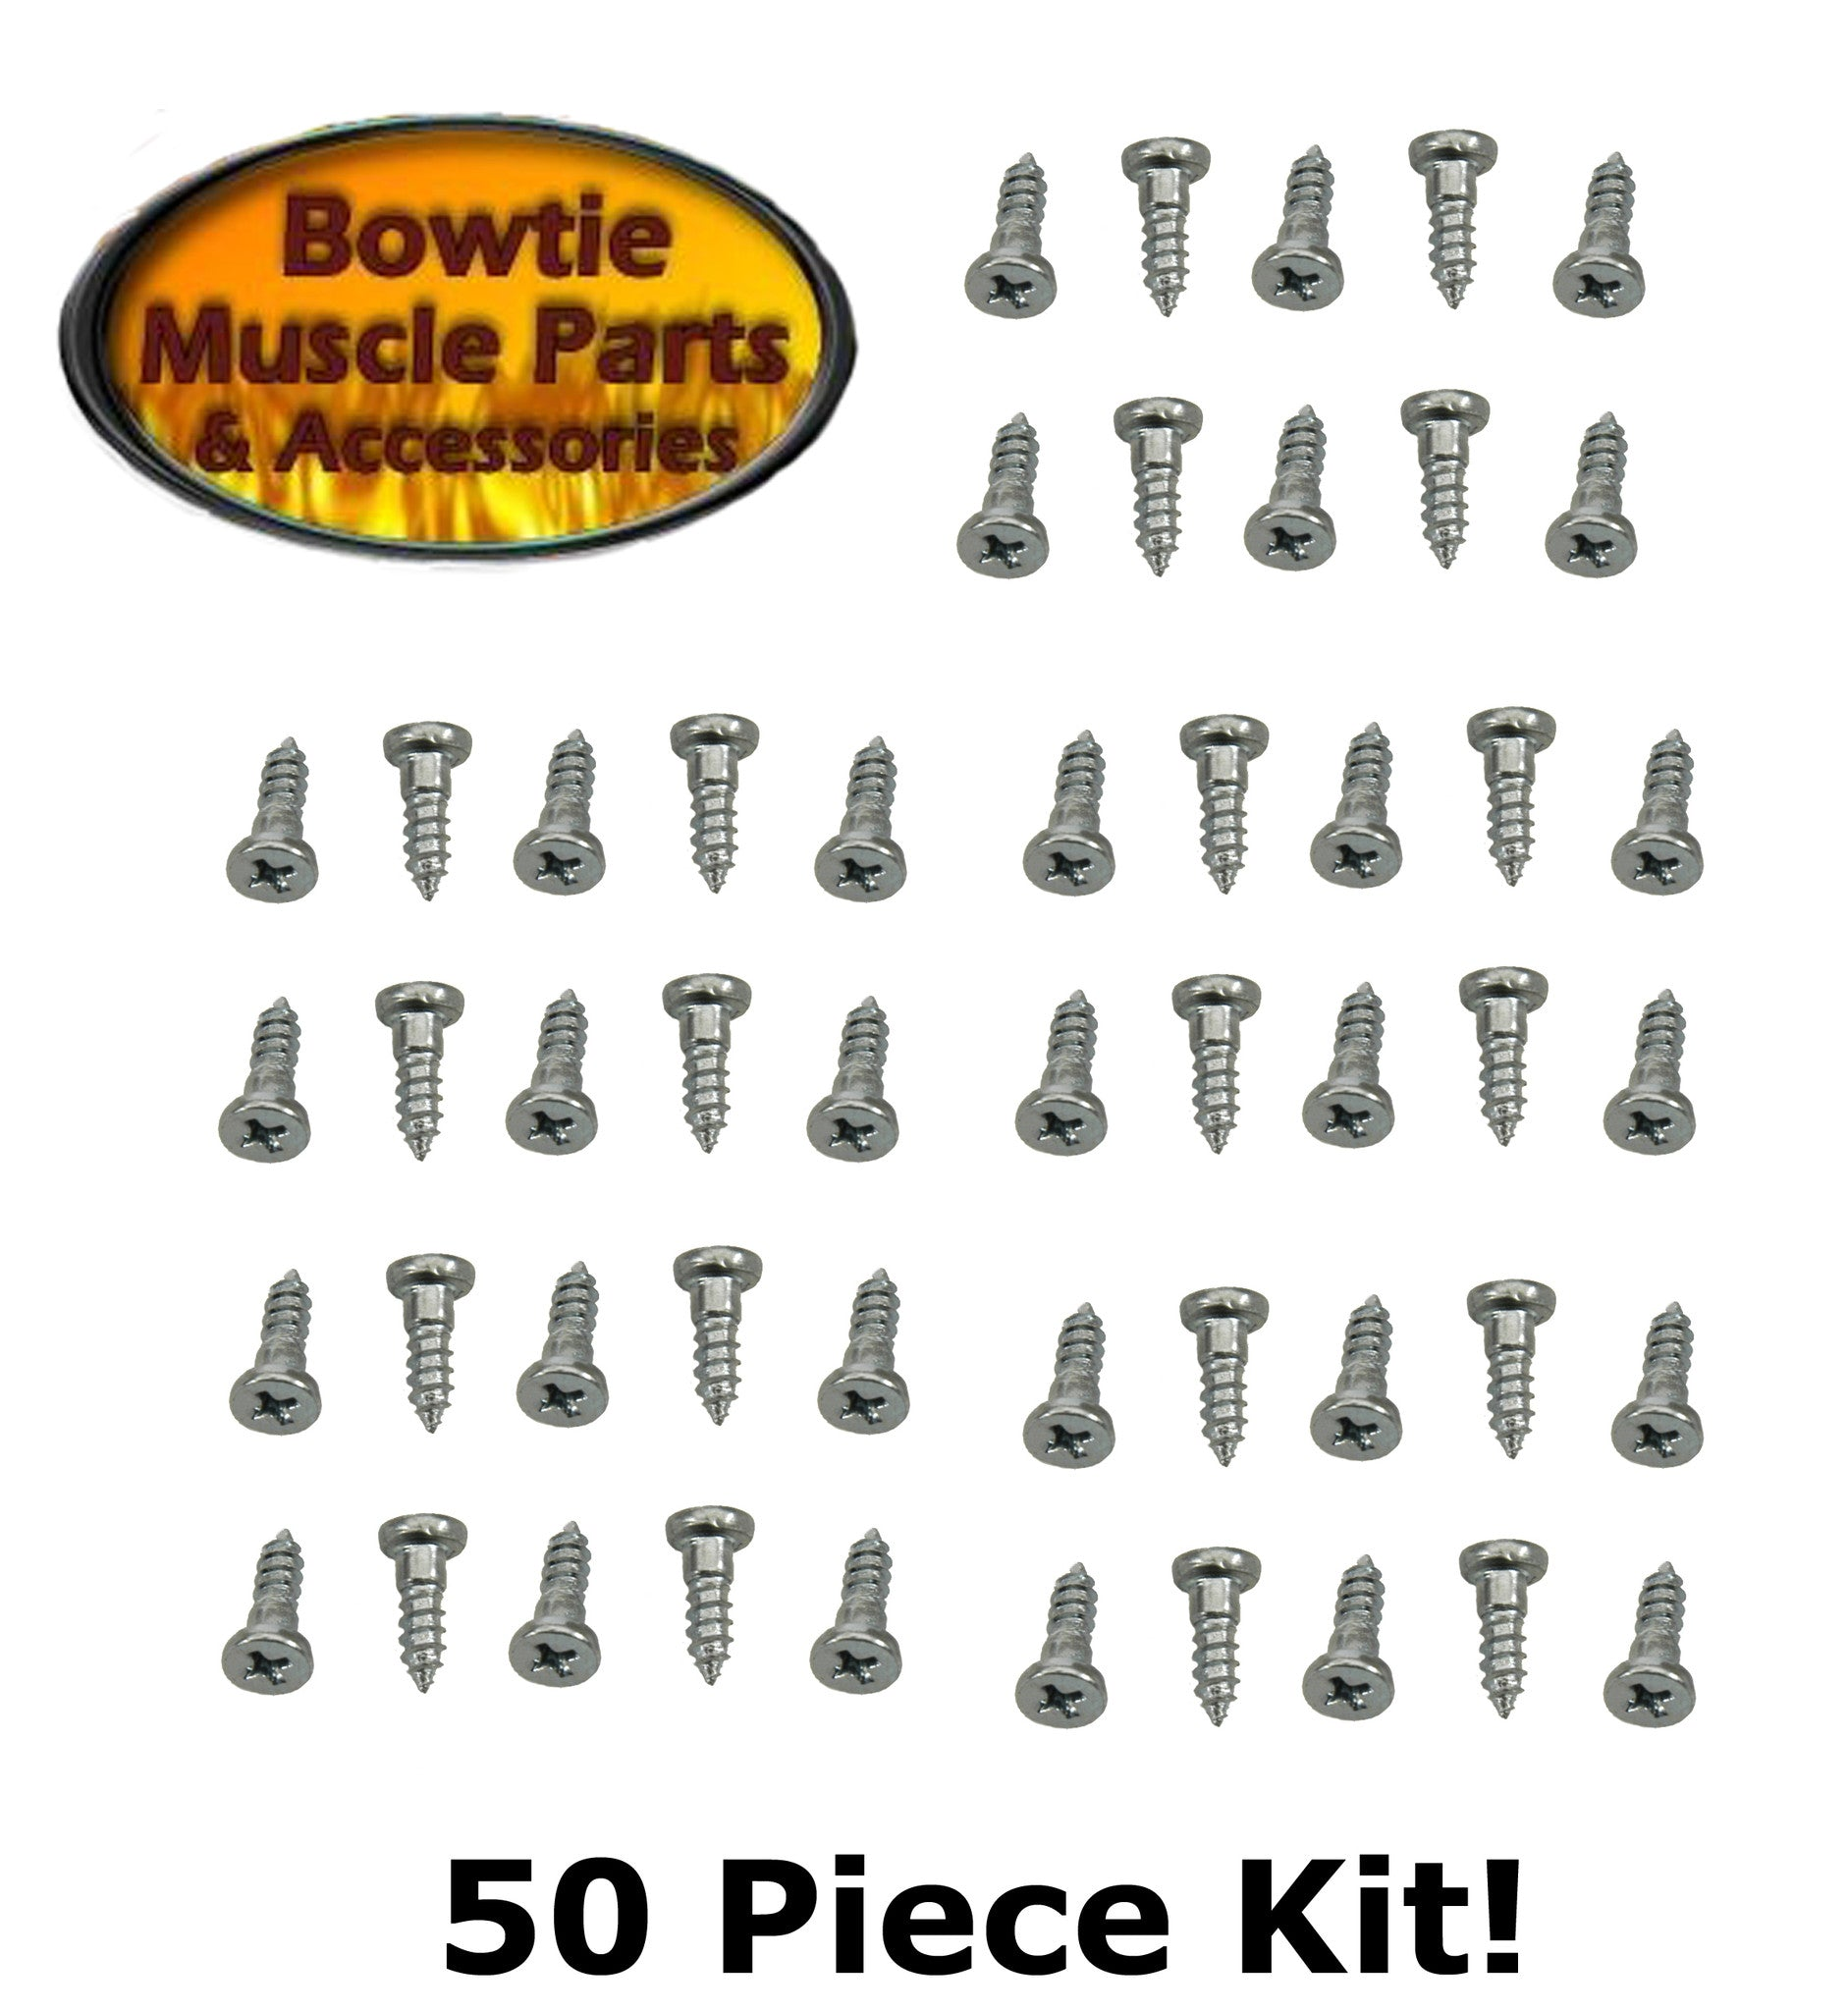 WINDOW MOLDING SCREW IN STUD SET 50 PC KIT